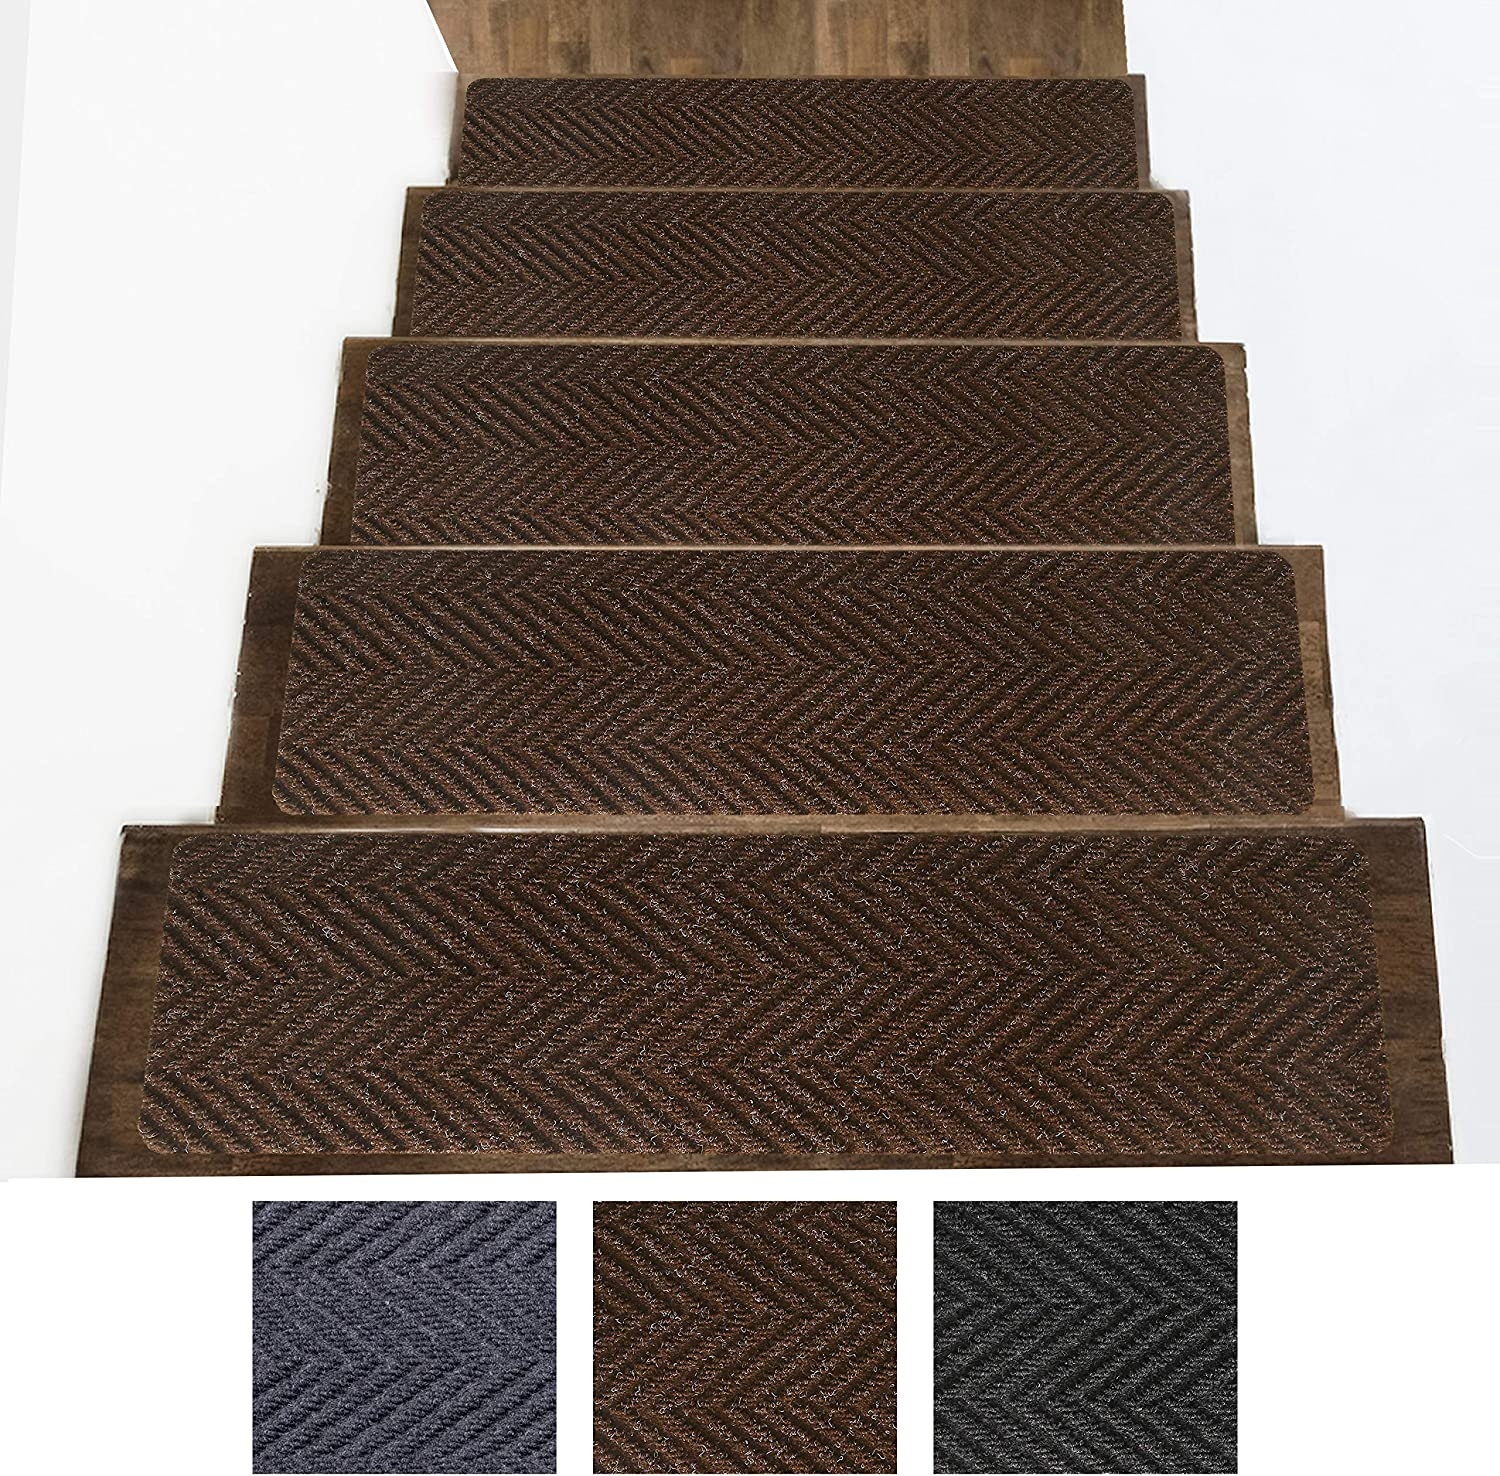 Indoor And Outdoor Carpet Stair Treads – Non Slip Rubber Stair   Outdoor Carpet For Stairs   Navy Pattern   Artificial Grass   Front Entrance   Heavy Duty   Mosaic